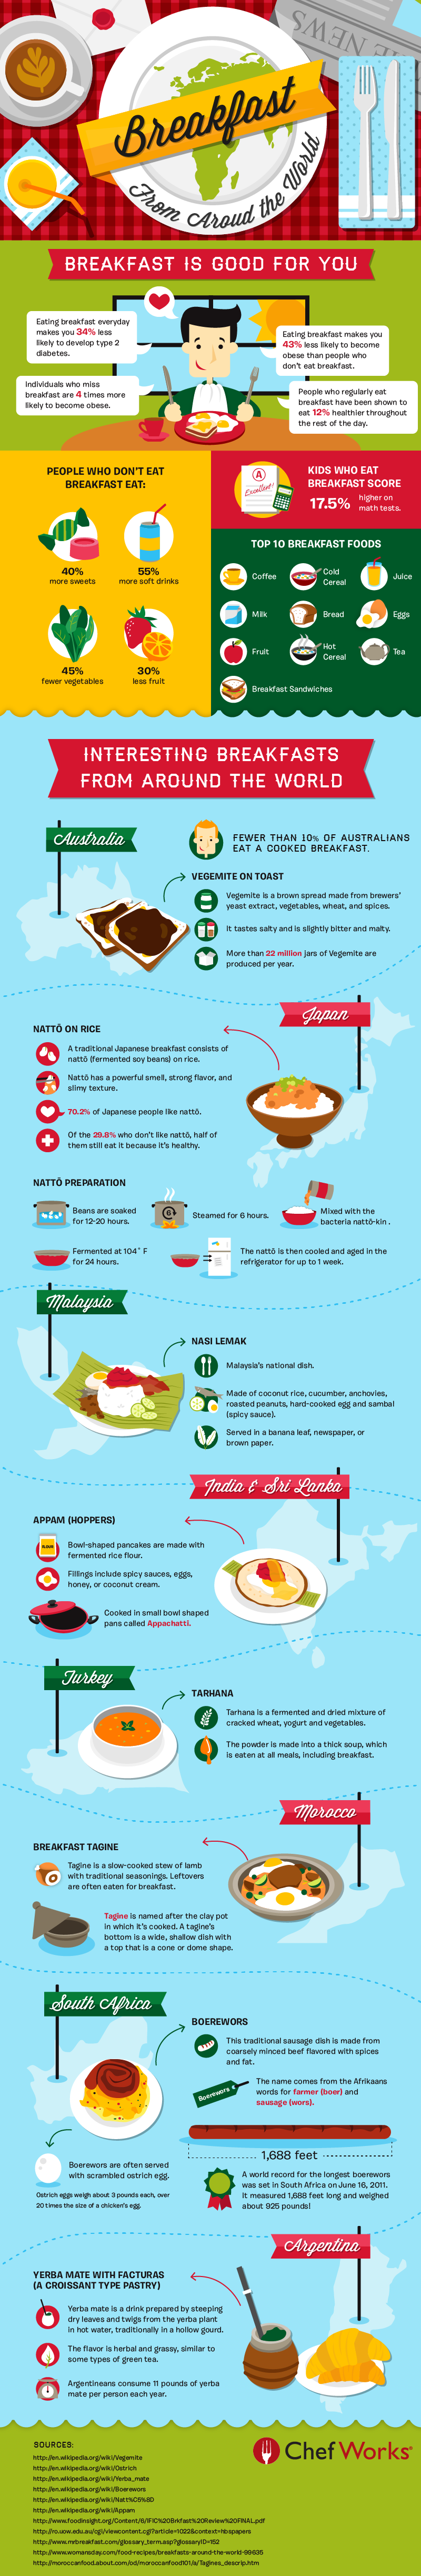 breakfast-from-around-the-world_5245e63b79a6a